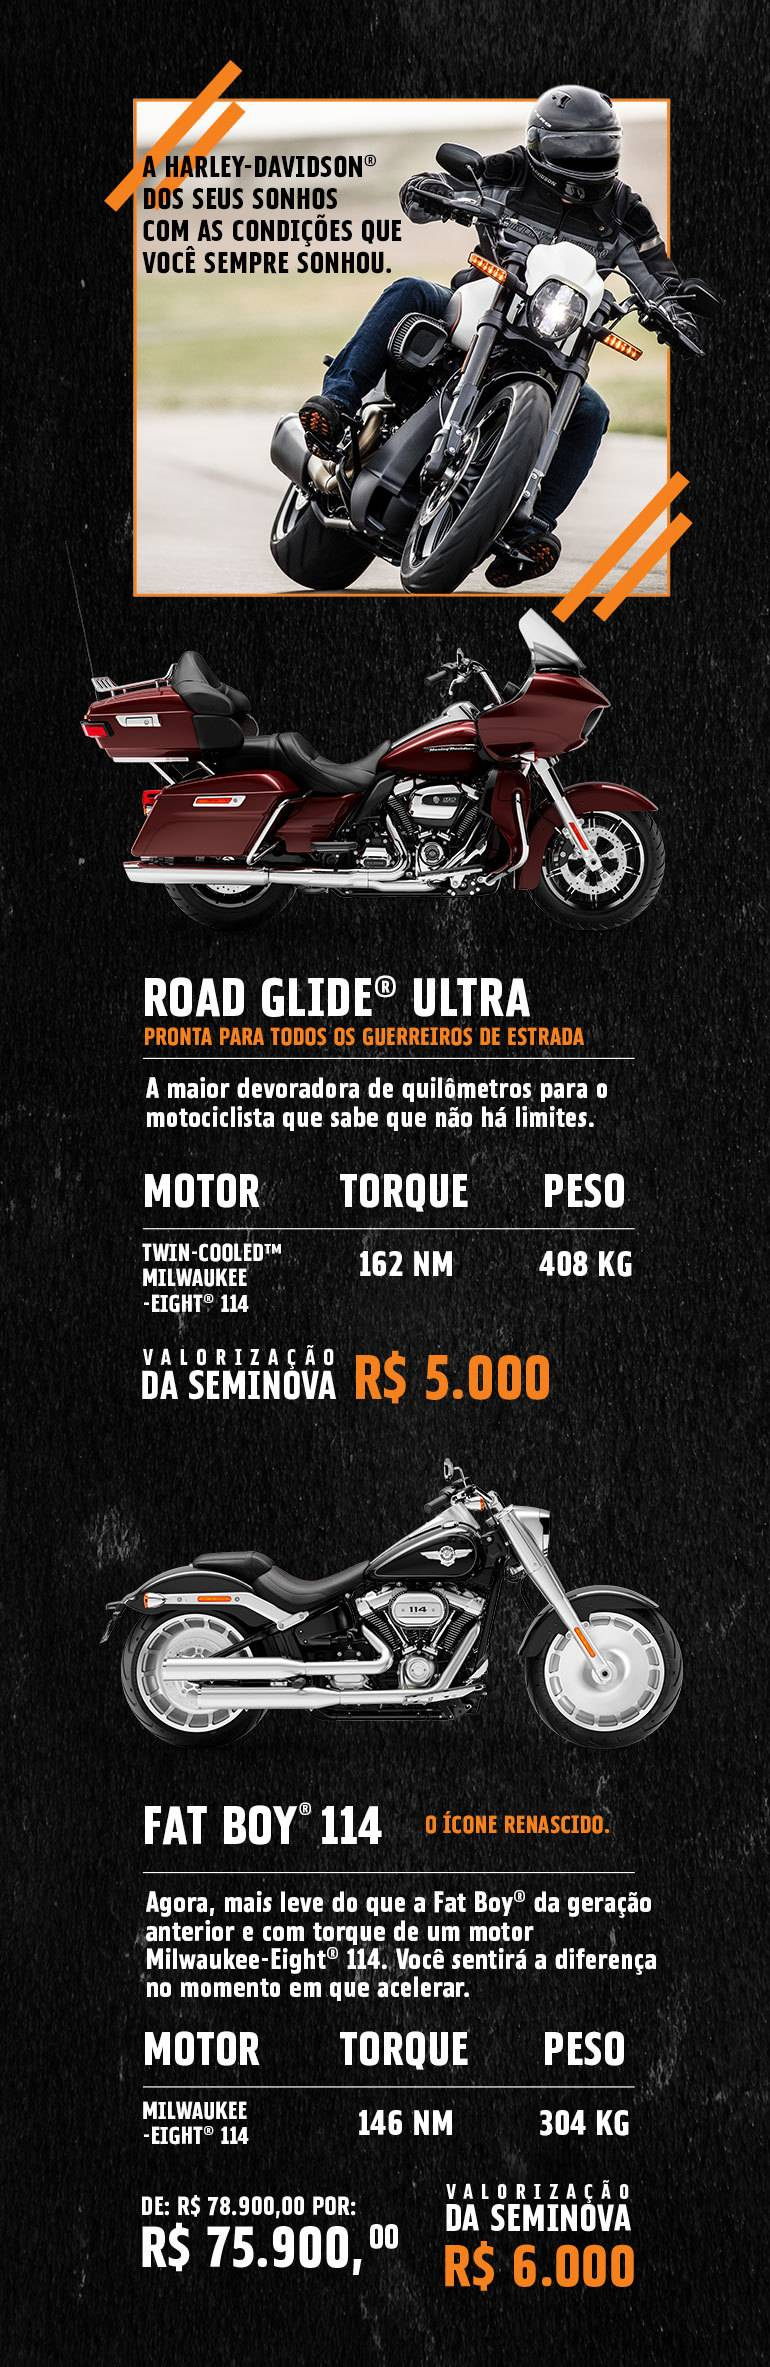 Oferta Road Glide Ultra e Fat Boy 114